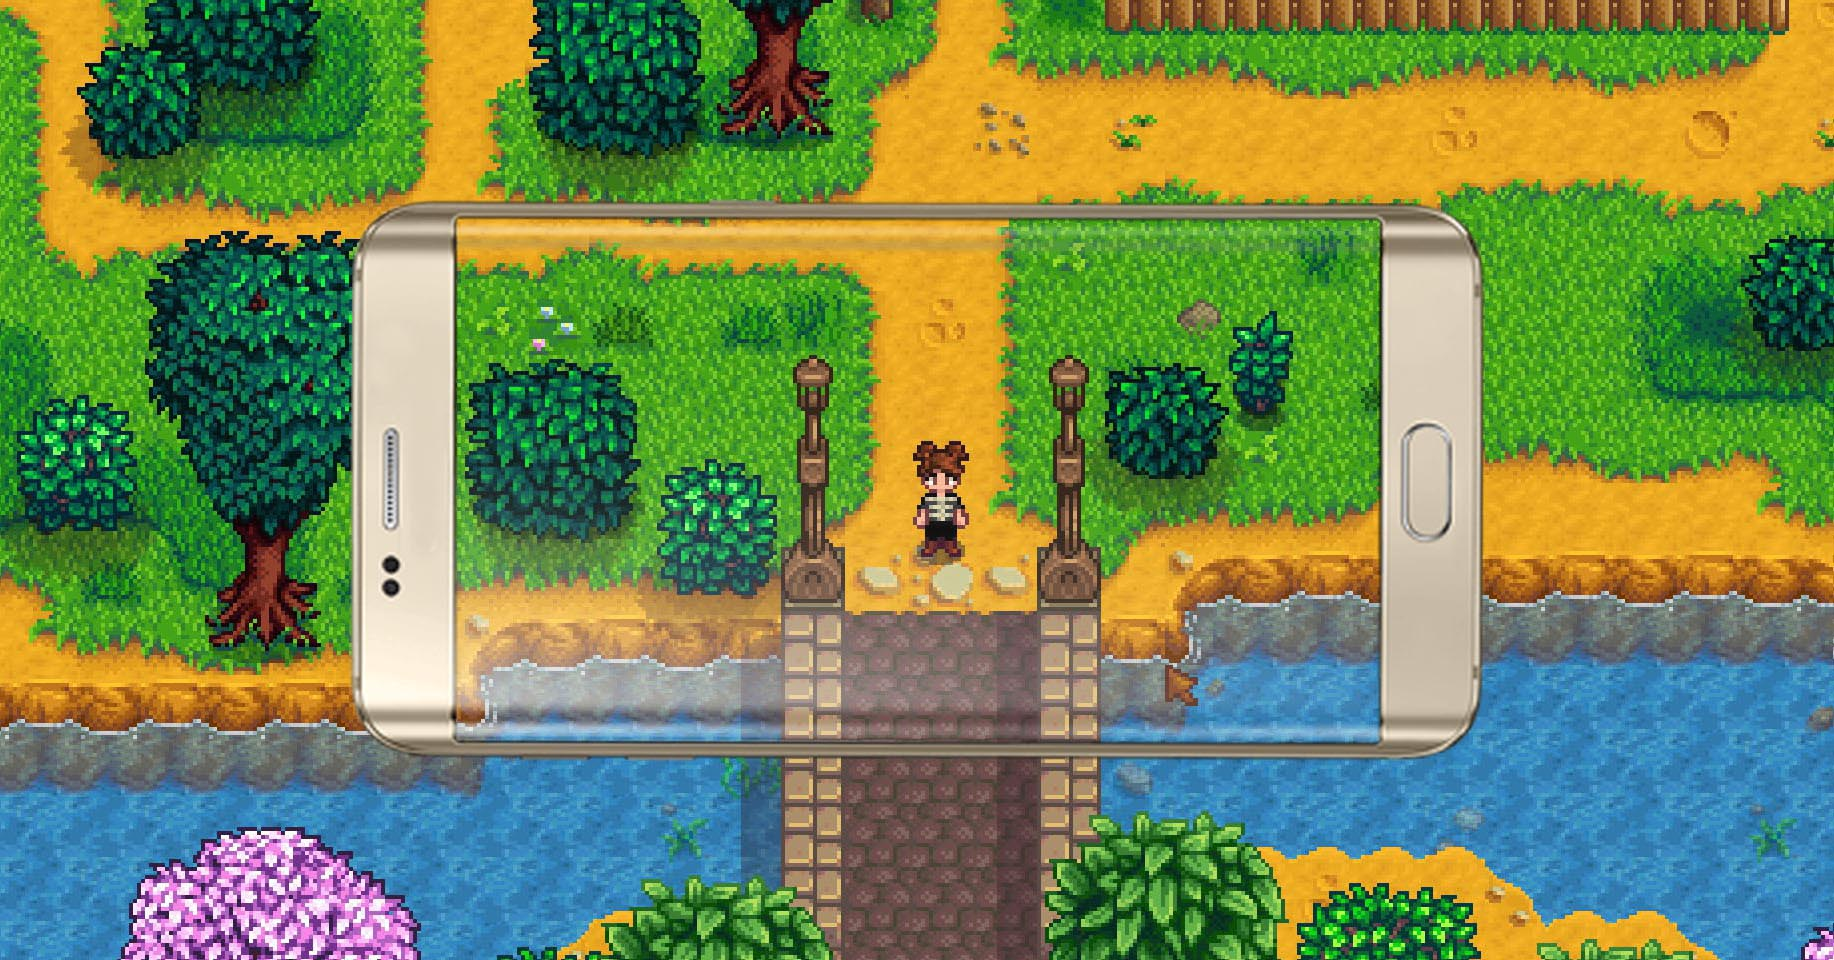 Stardew Valley; One of the most downloaded games on Steam comes to iOS